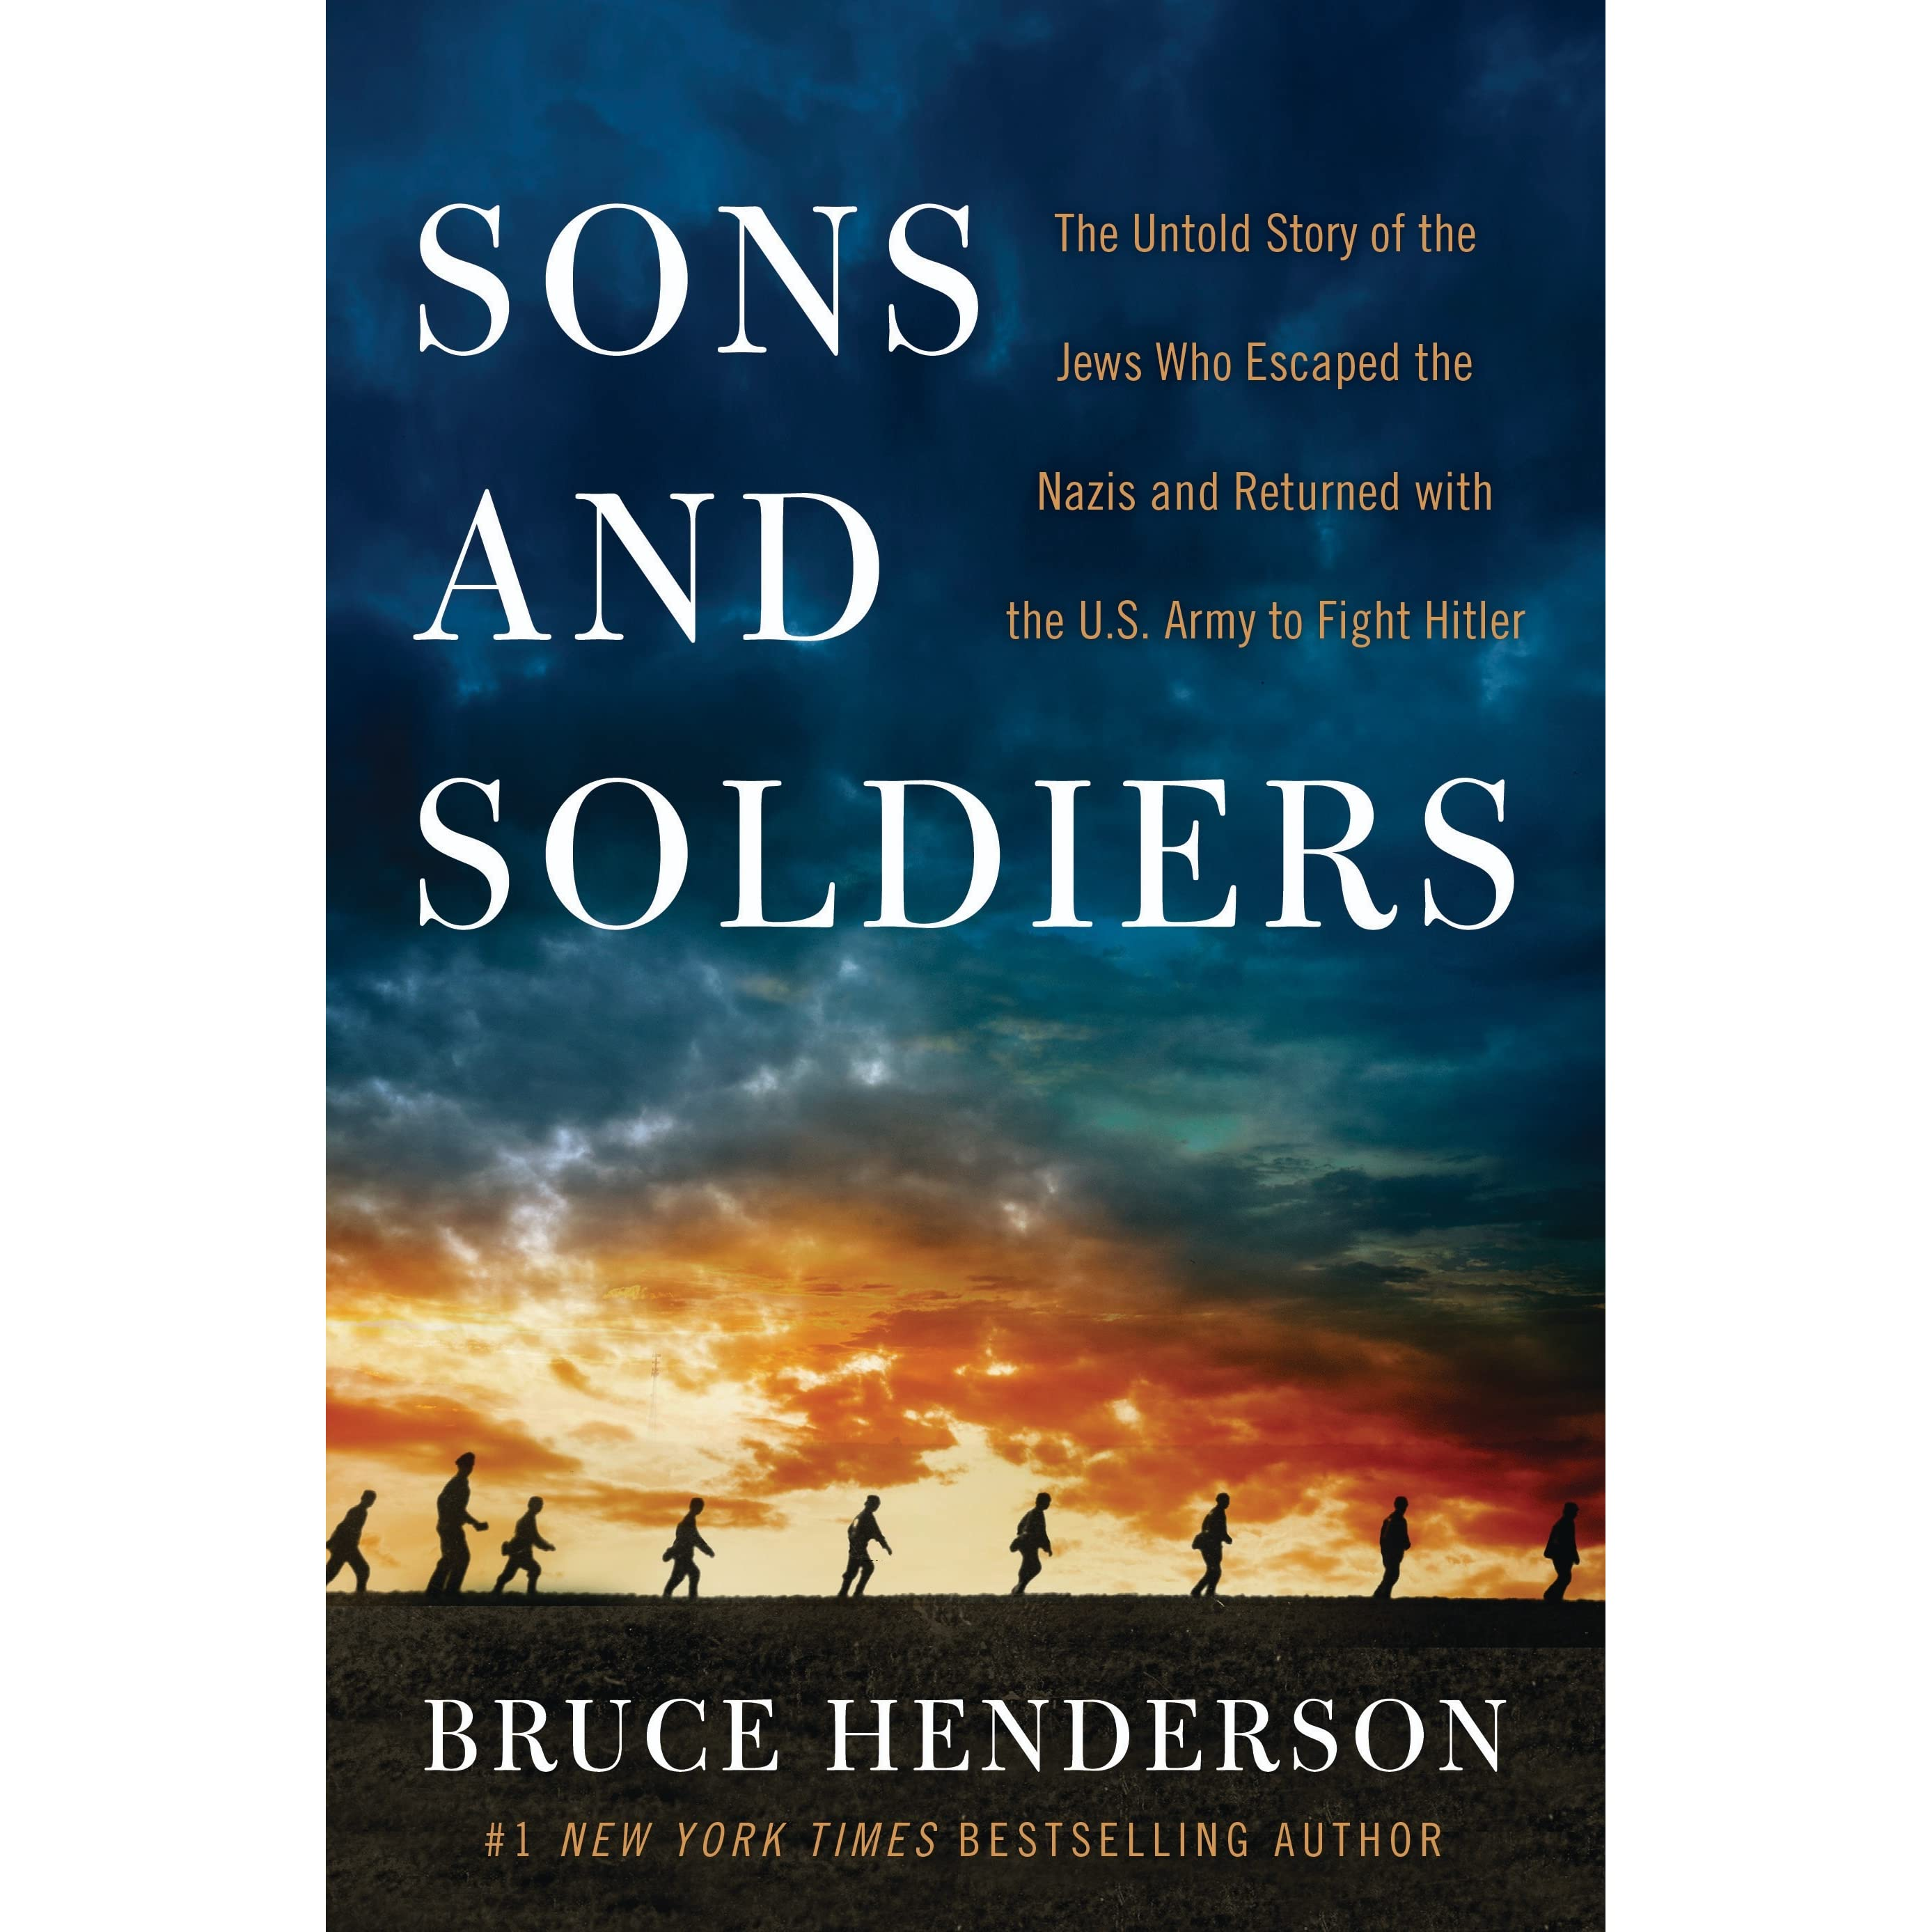 Jewish Quotes On Life Sons And Soldiers The Untold Story Of The Jews Who Escaped The